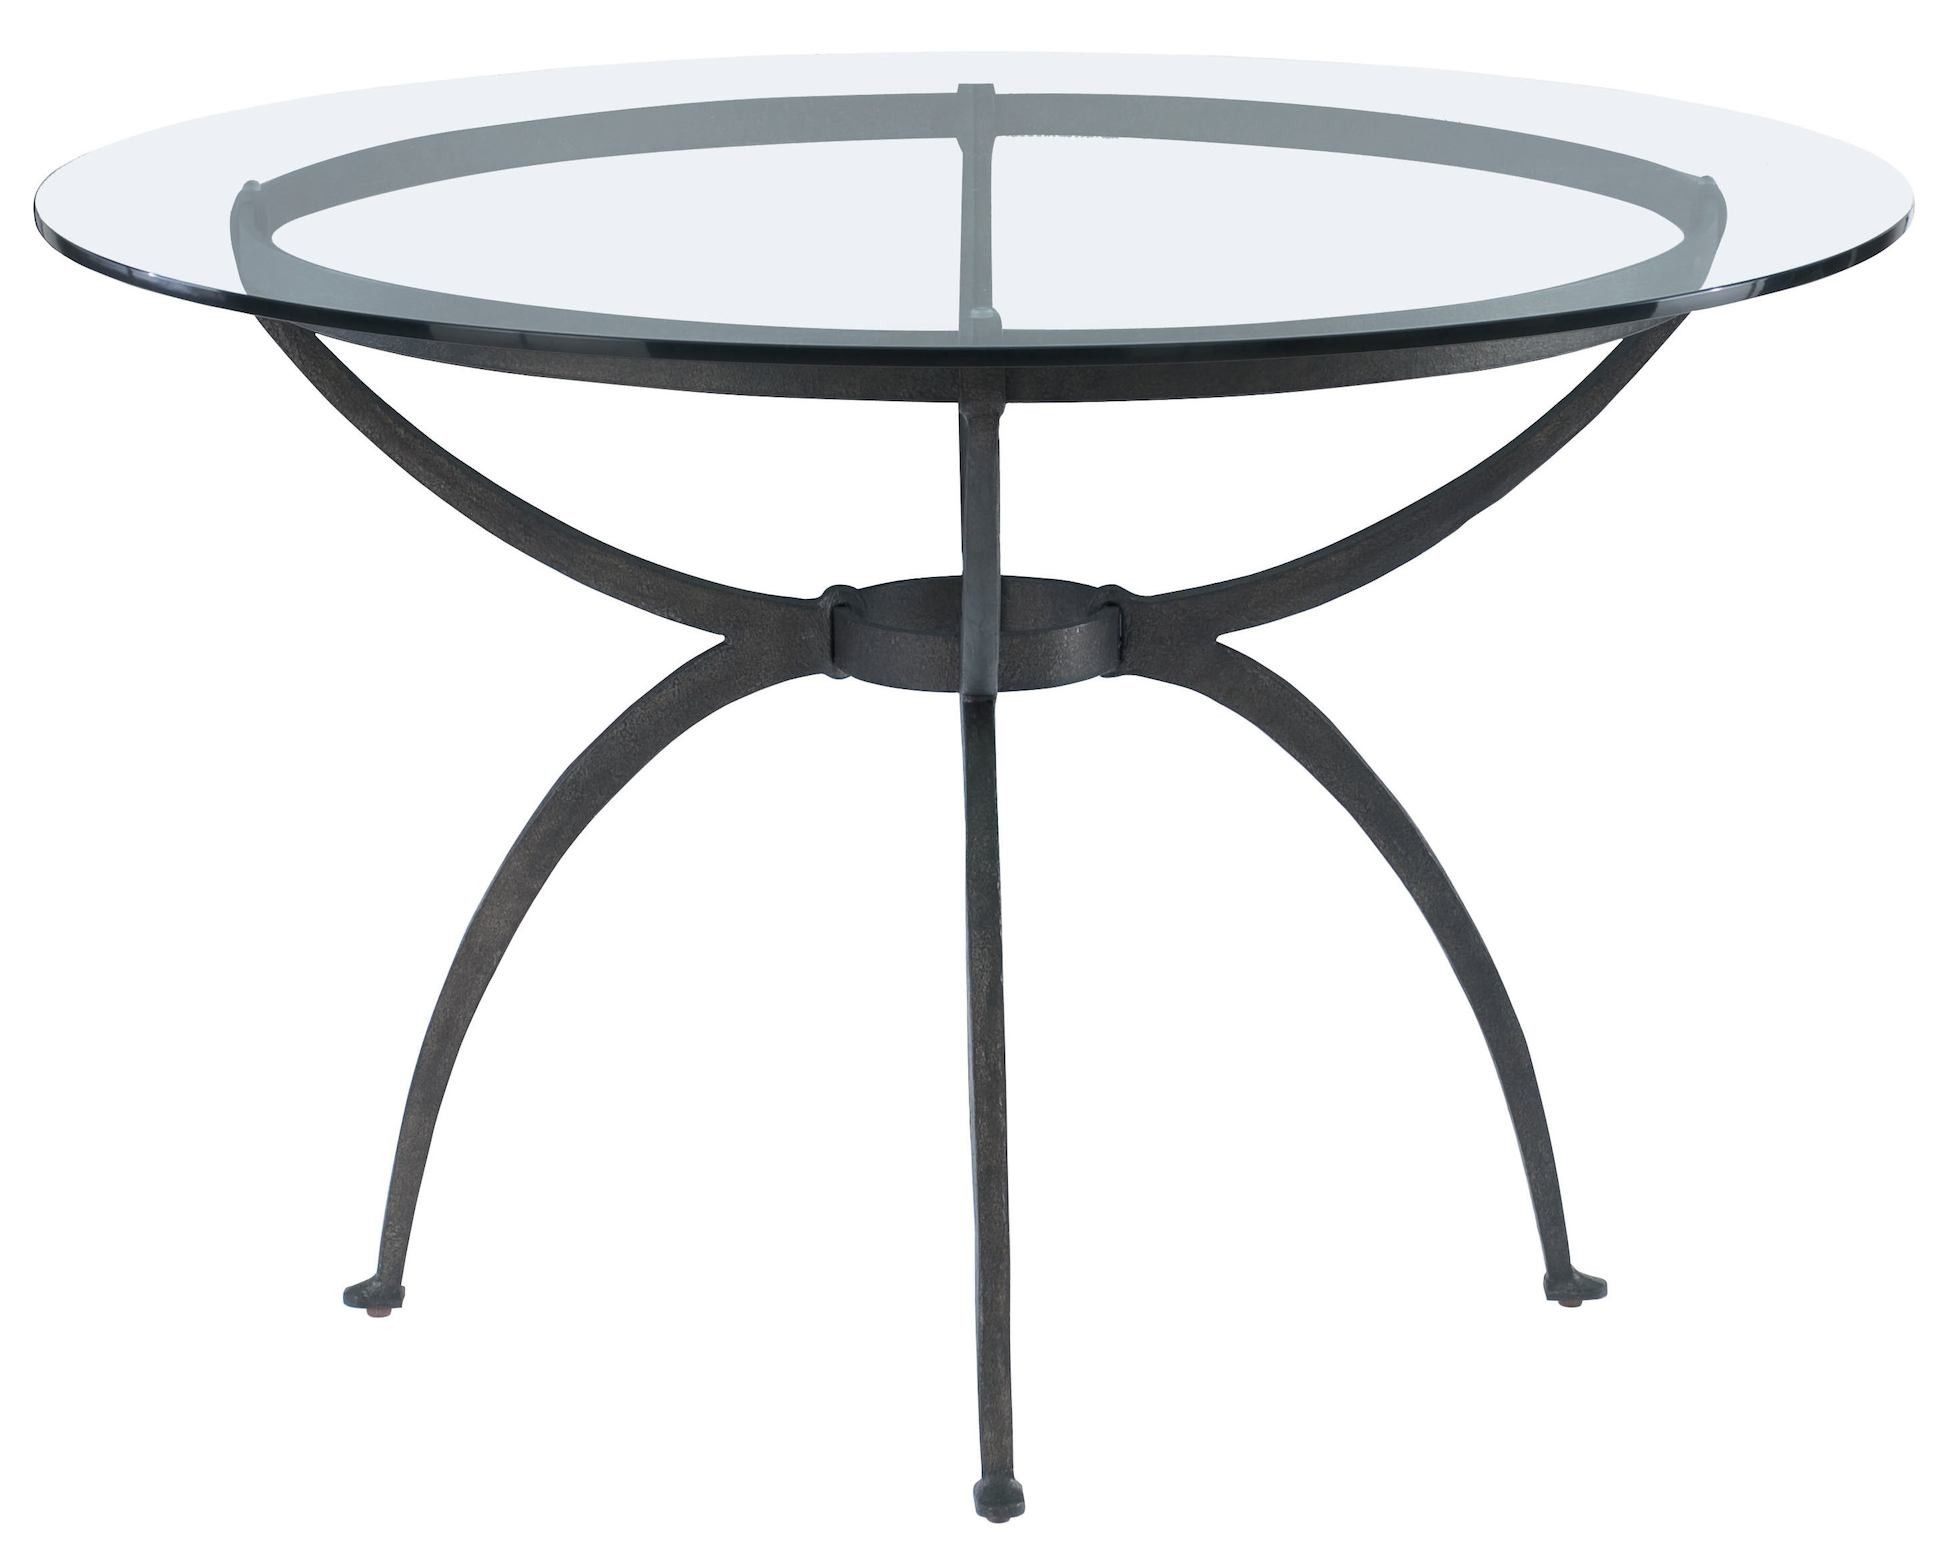 Wrought Iron Console Table With Glass Top Google Search Round Glass Kitchen Table Glass Round Dining Table Glass Kitchen Tables